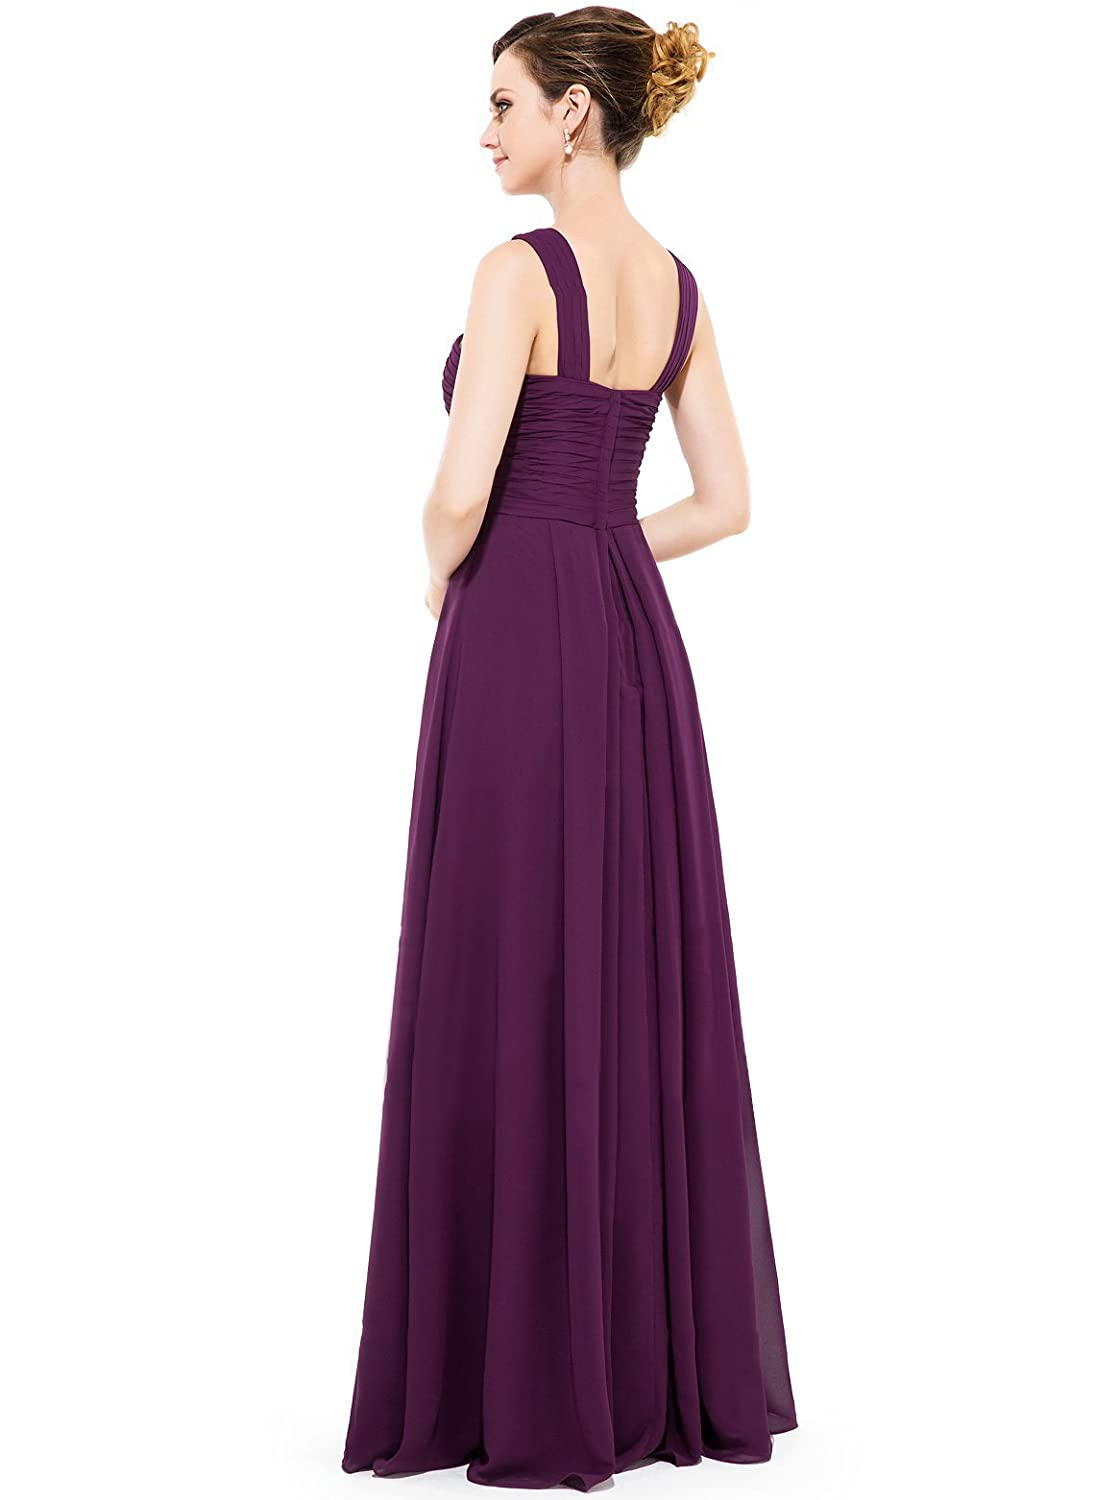 Loffy Women\'s Long Prom Evening Dress Gown Bridesmaid For Wedding at ...